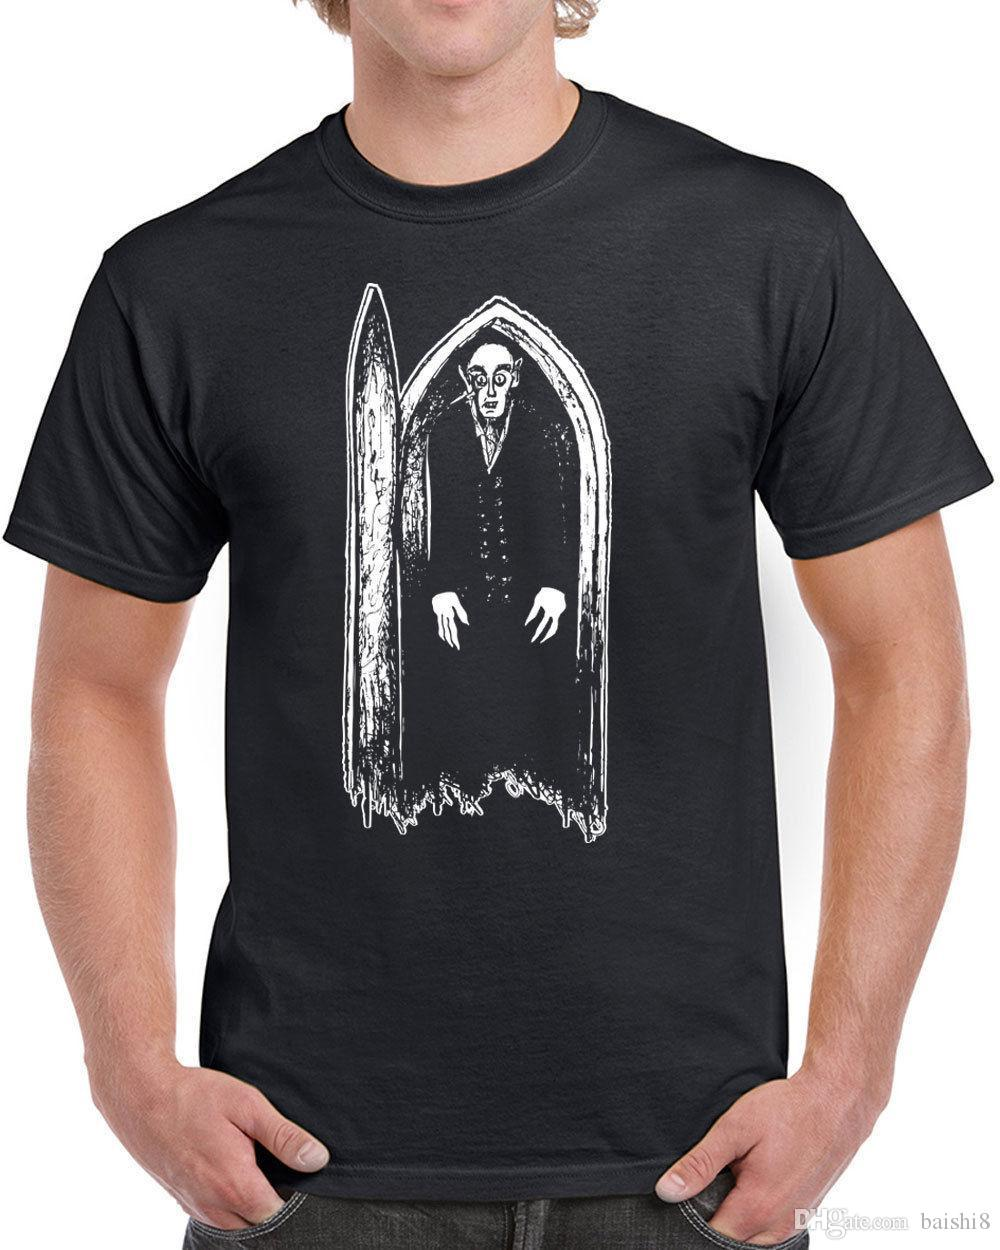 Nosferatu Mens T-shirt Scary Movie Vampire Horror Villain Classic Silent  New 100% Cotton Letter Printed T Shirts Top Tee